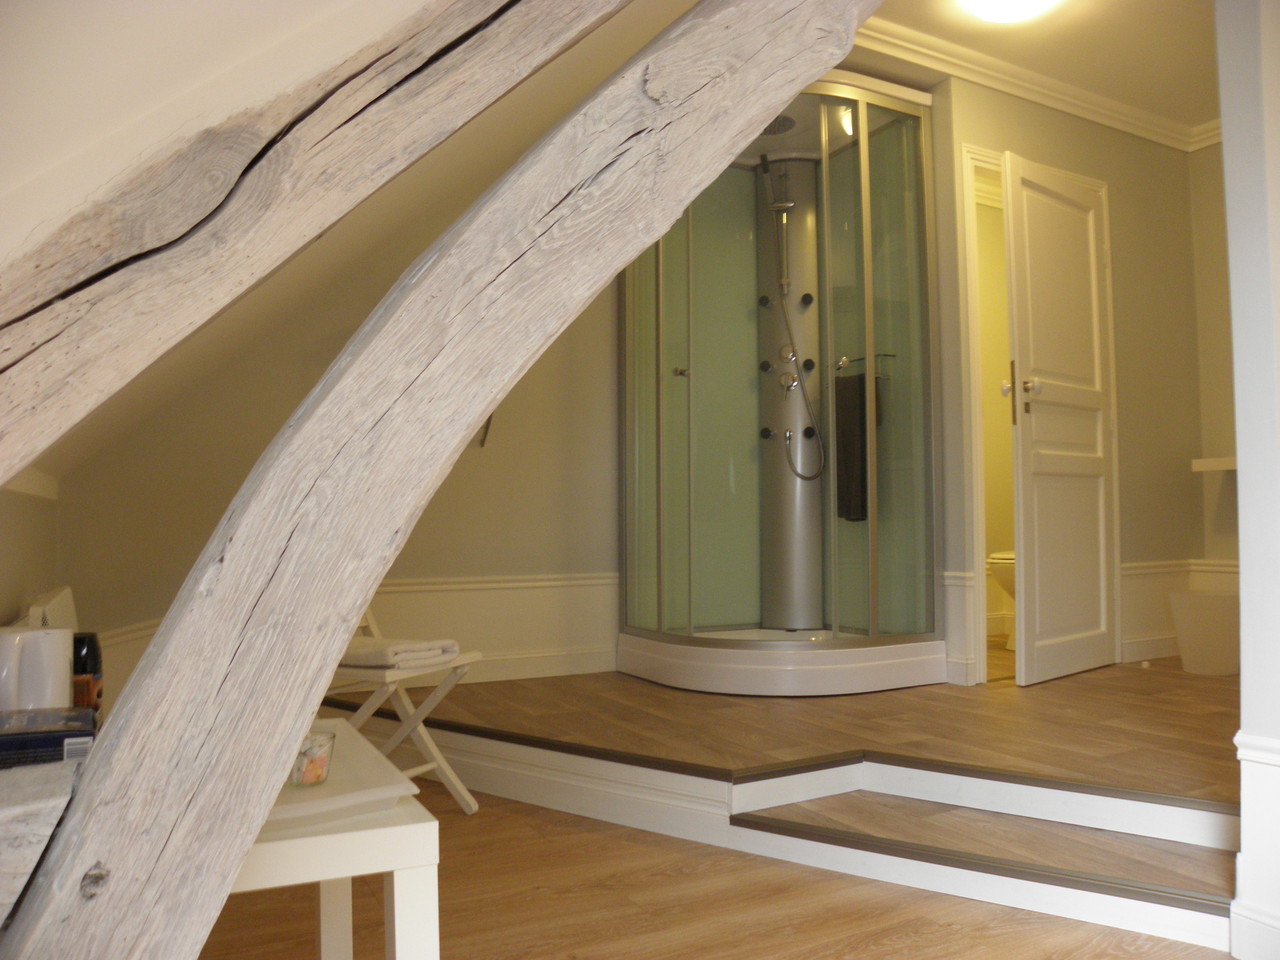 Chambre Hote Amiens B B Bed And Breakfast Chambre D Hote Proche De Amiens Moreuil